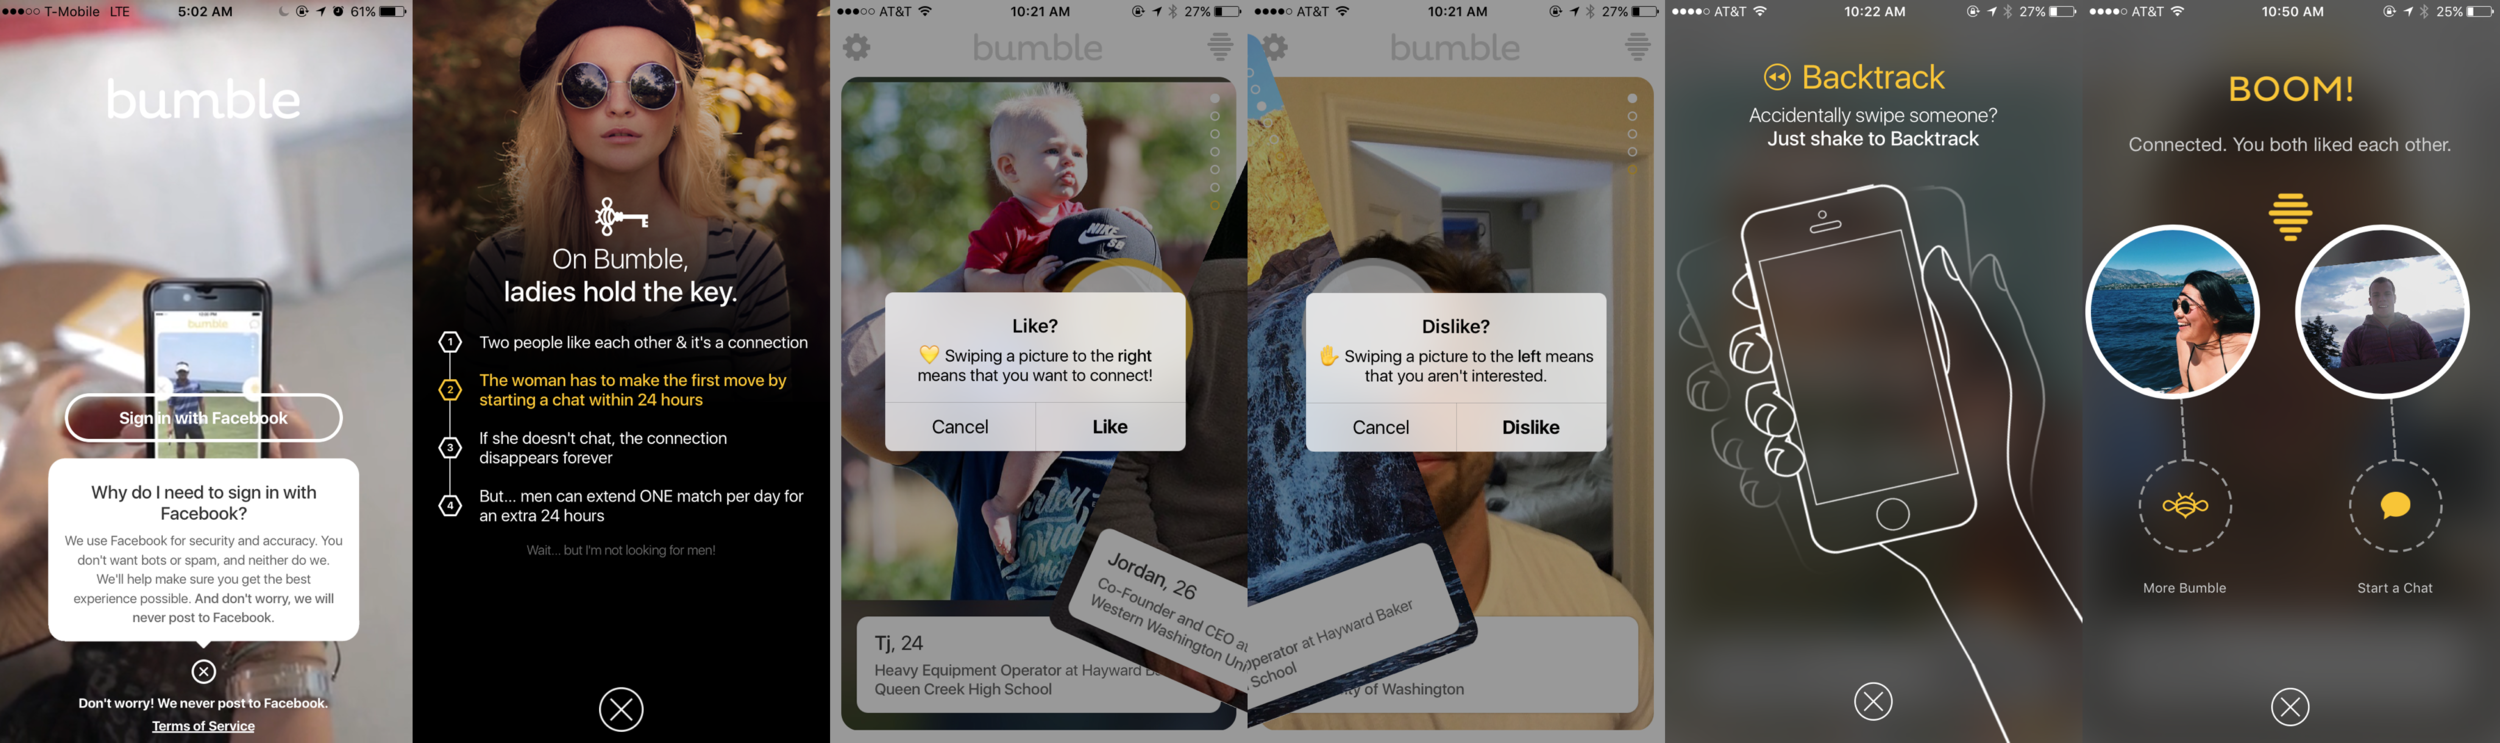 Bumble onboarding process